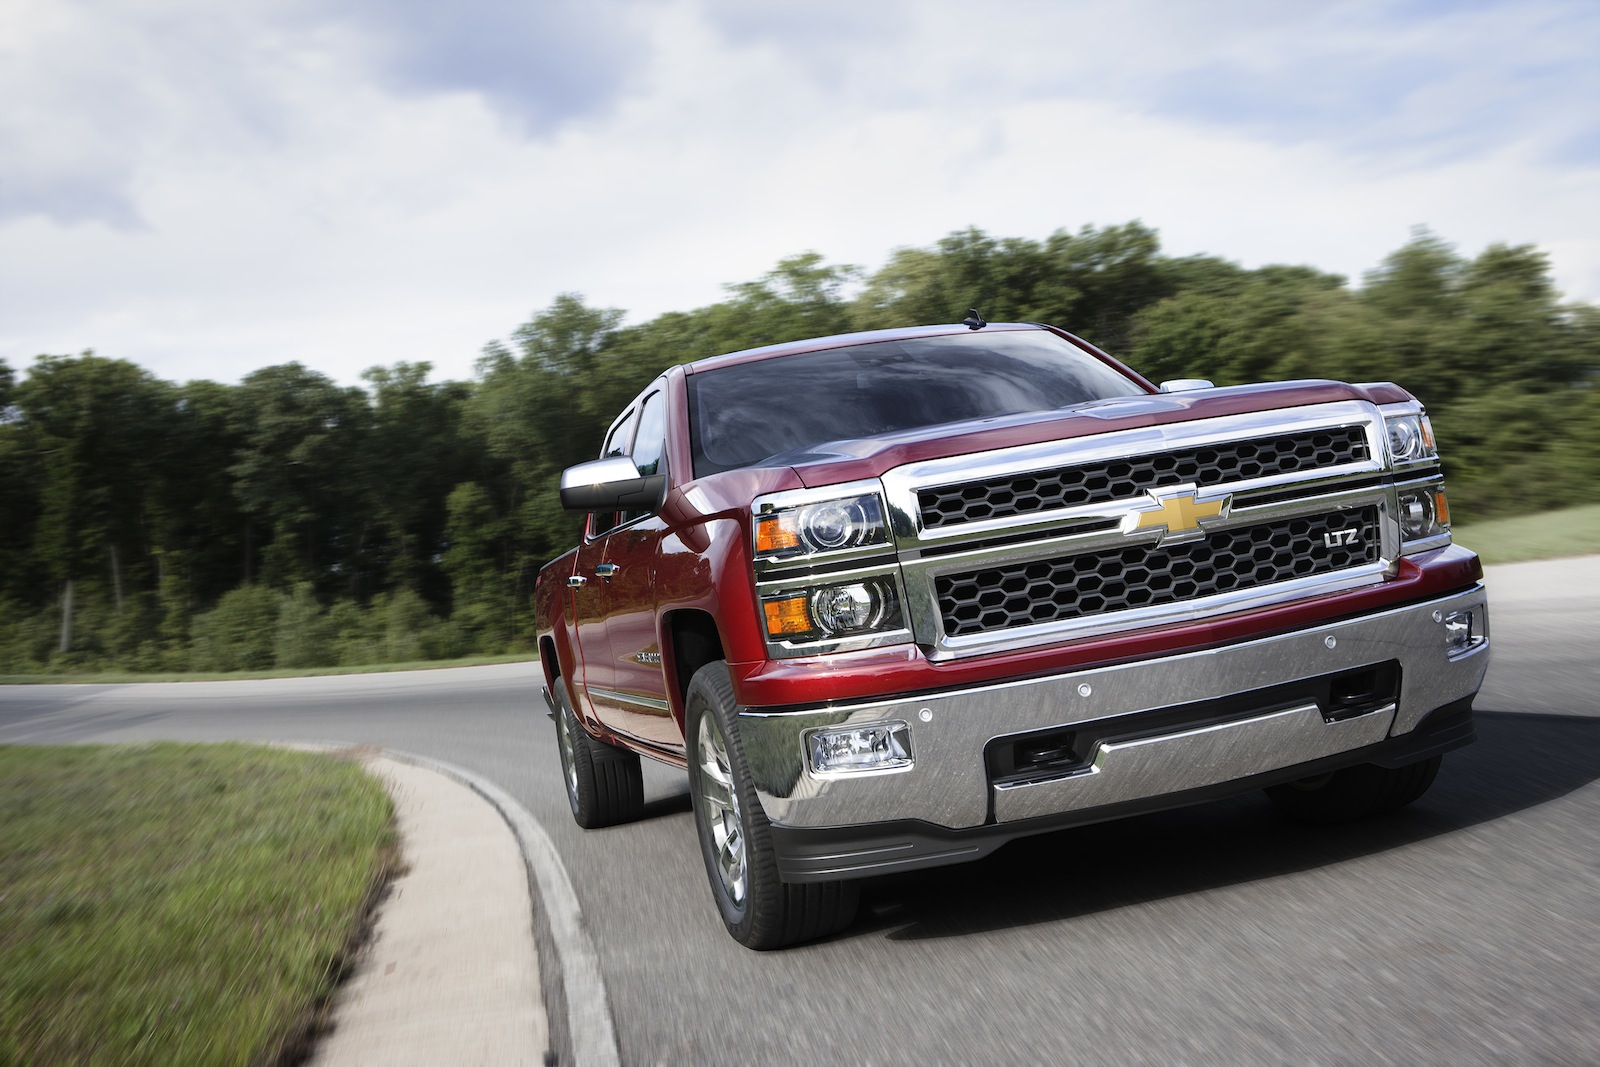 Silverado 2013 chevy silverado recalls : 2014 Chevrolet Silverado, GMC Sierra recalled over power steering ...